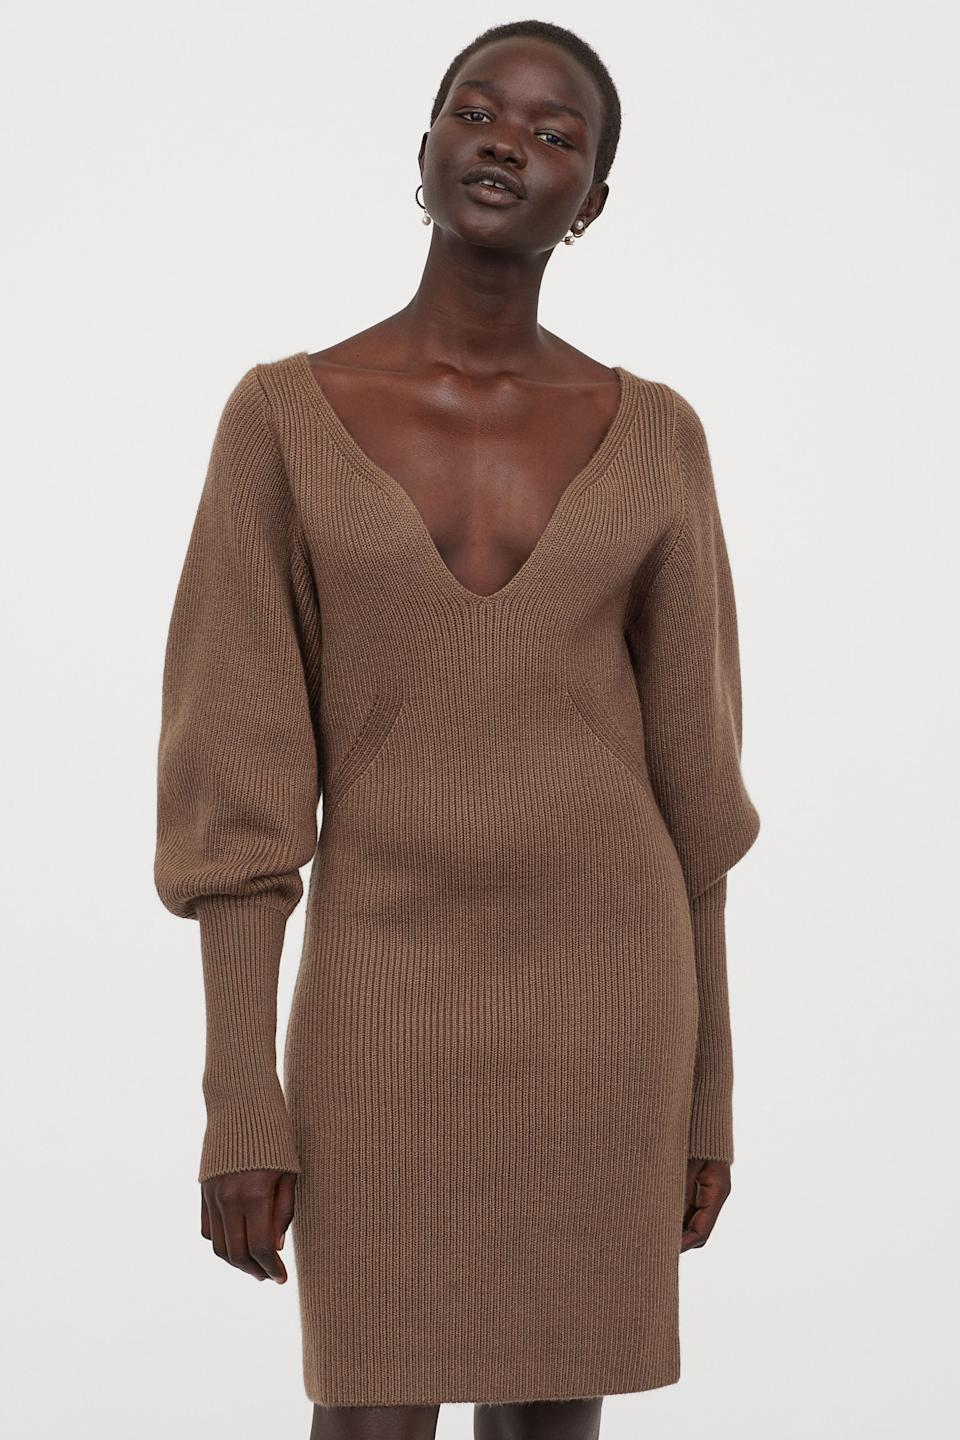 "<br><br><strong>H&M</strong> Rib-knit Dress, $, available at <a href=""https://go.skimresources.com/?id=30283X879131&url=https%3A%2F%2Fwww2.hm.com%2Fen_us%2Fproductpage.0848025003.html%3F"" rel=""nofollow noopener"" target=""_blank"" data-ylk=""slk:H&M"" class=""link rapid-noclick-resp"">H&M</a>"